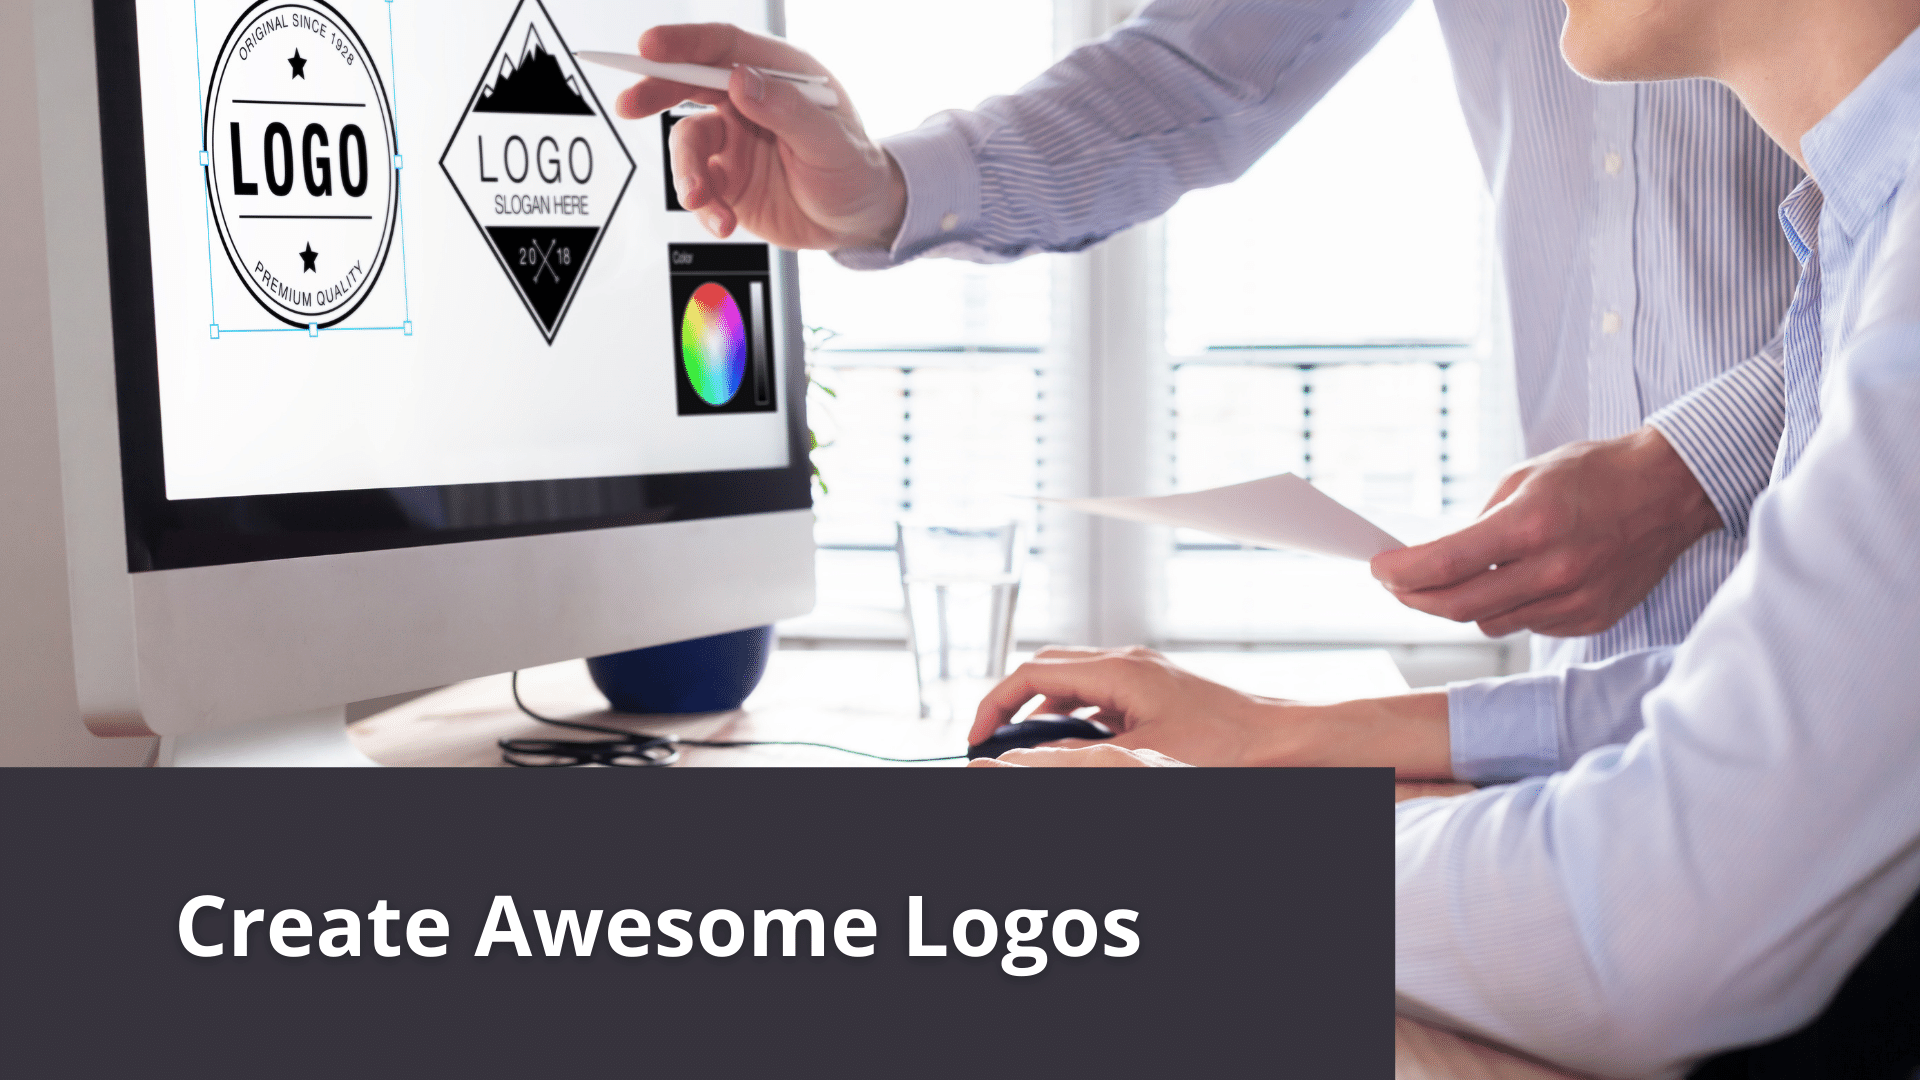 Quickly Create Awesome Logos With the Help of Drag-and-Drop Editor 8